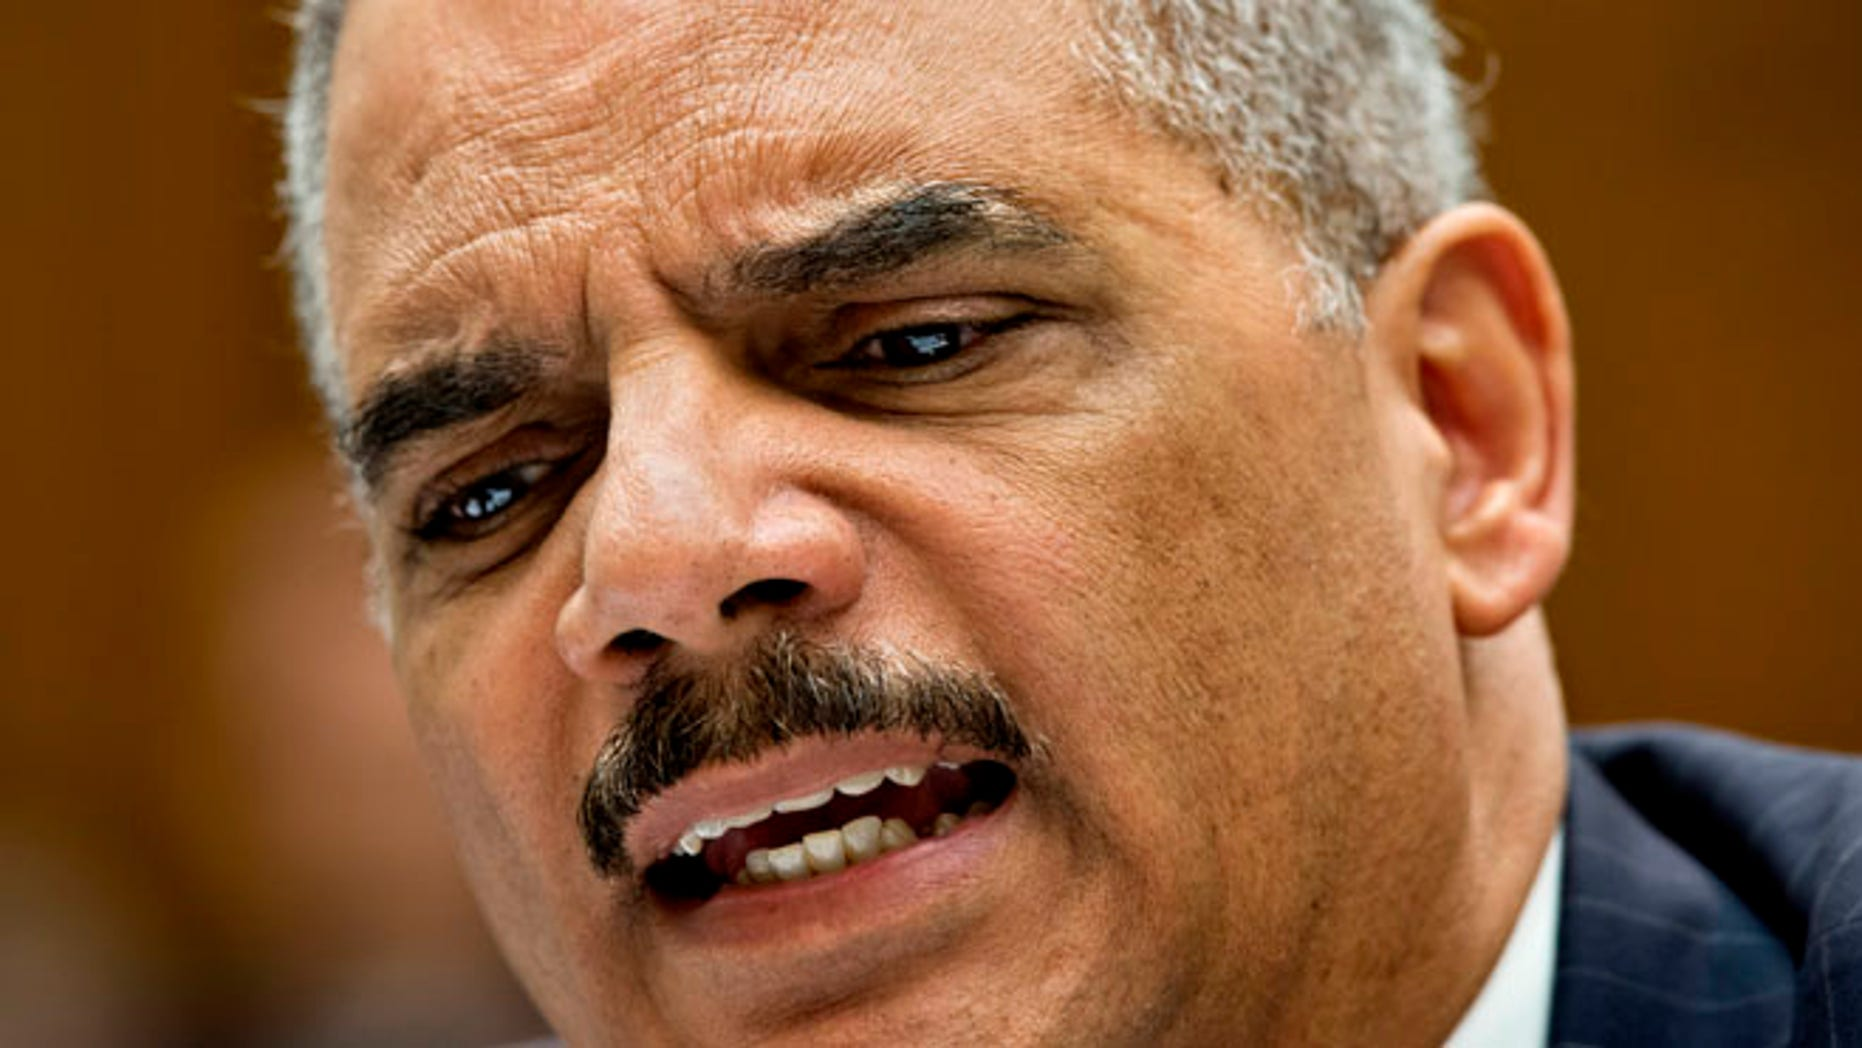 May 15, 2014: Attorney General Eric Holder reacts to aggressive questioning from Rep. Darrell Issa, R-Calif. as he testifies on Capitol Hill in Washington. (AP)